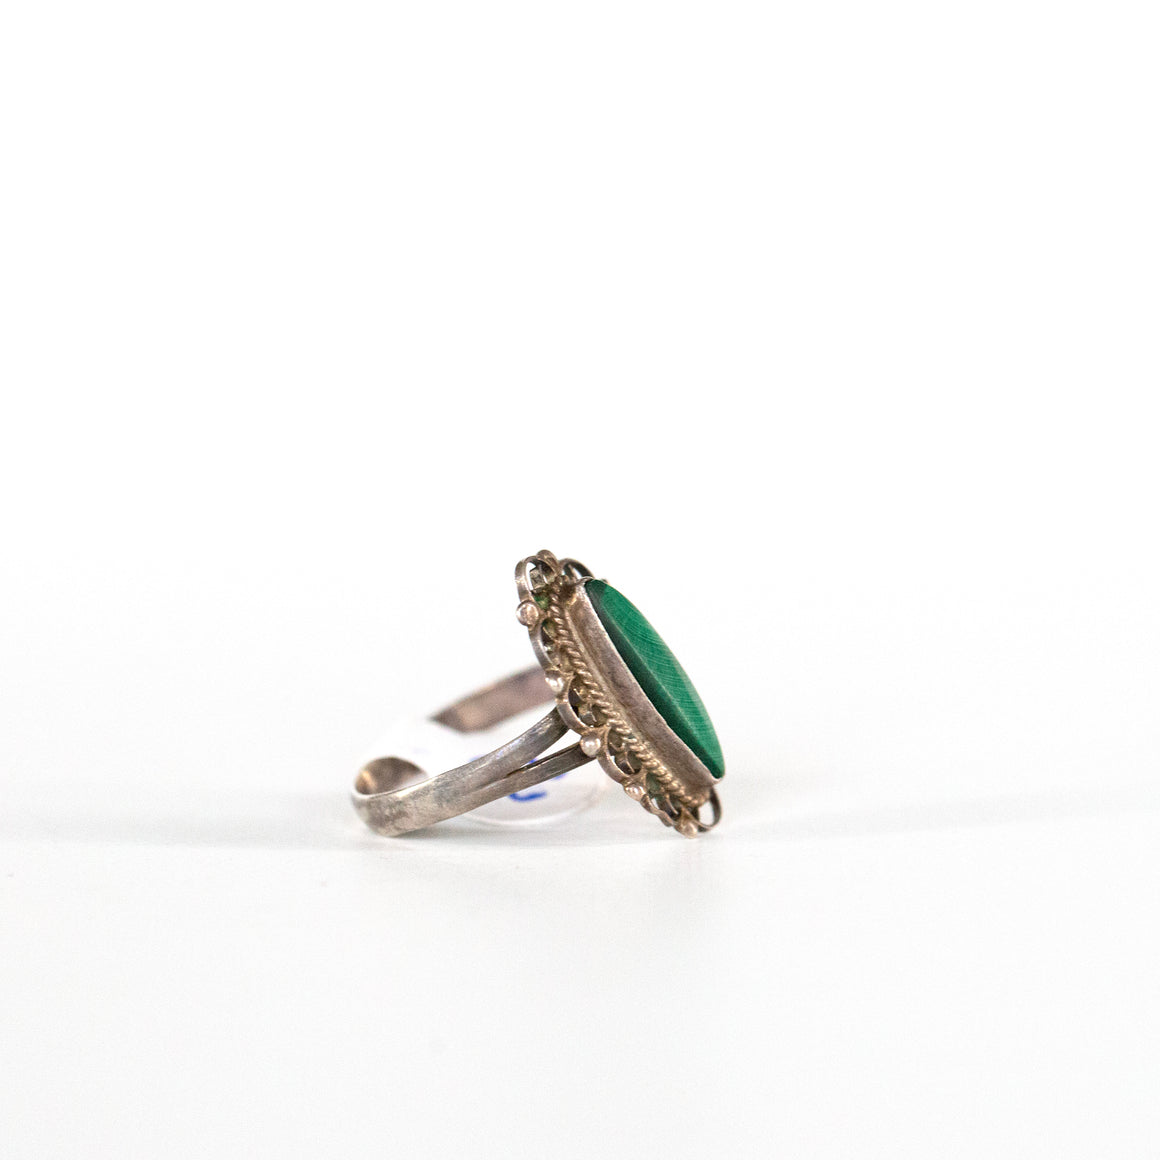 VINTAGE JEWELRY | STERLING MALACHITE RING (SIZE 7.5)